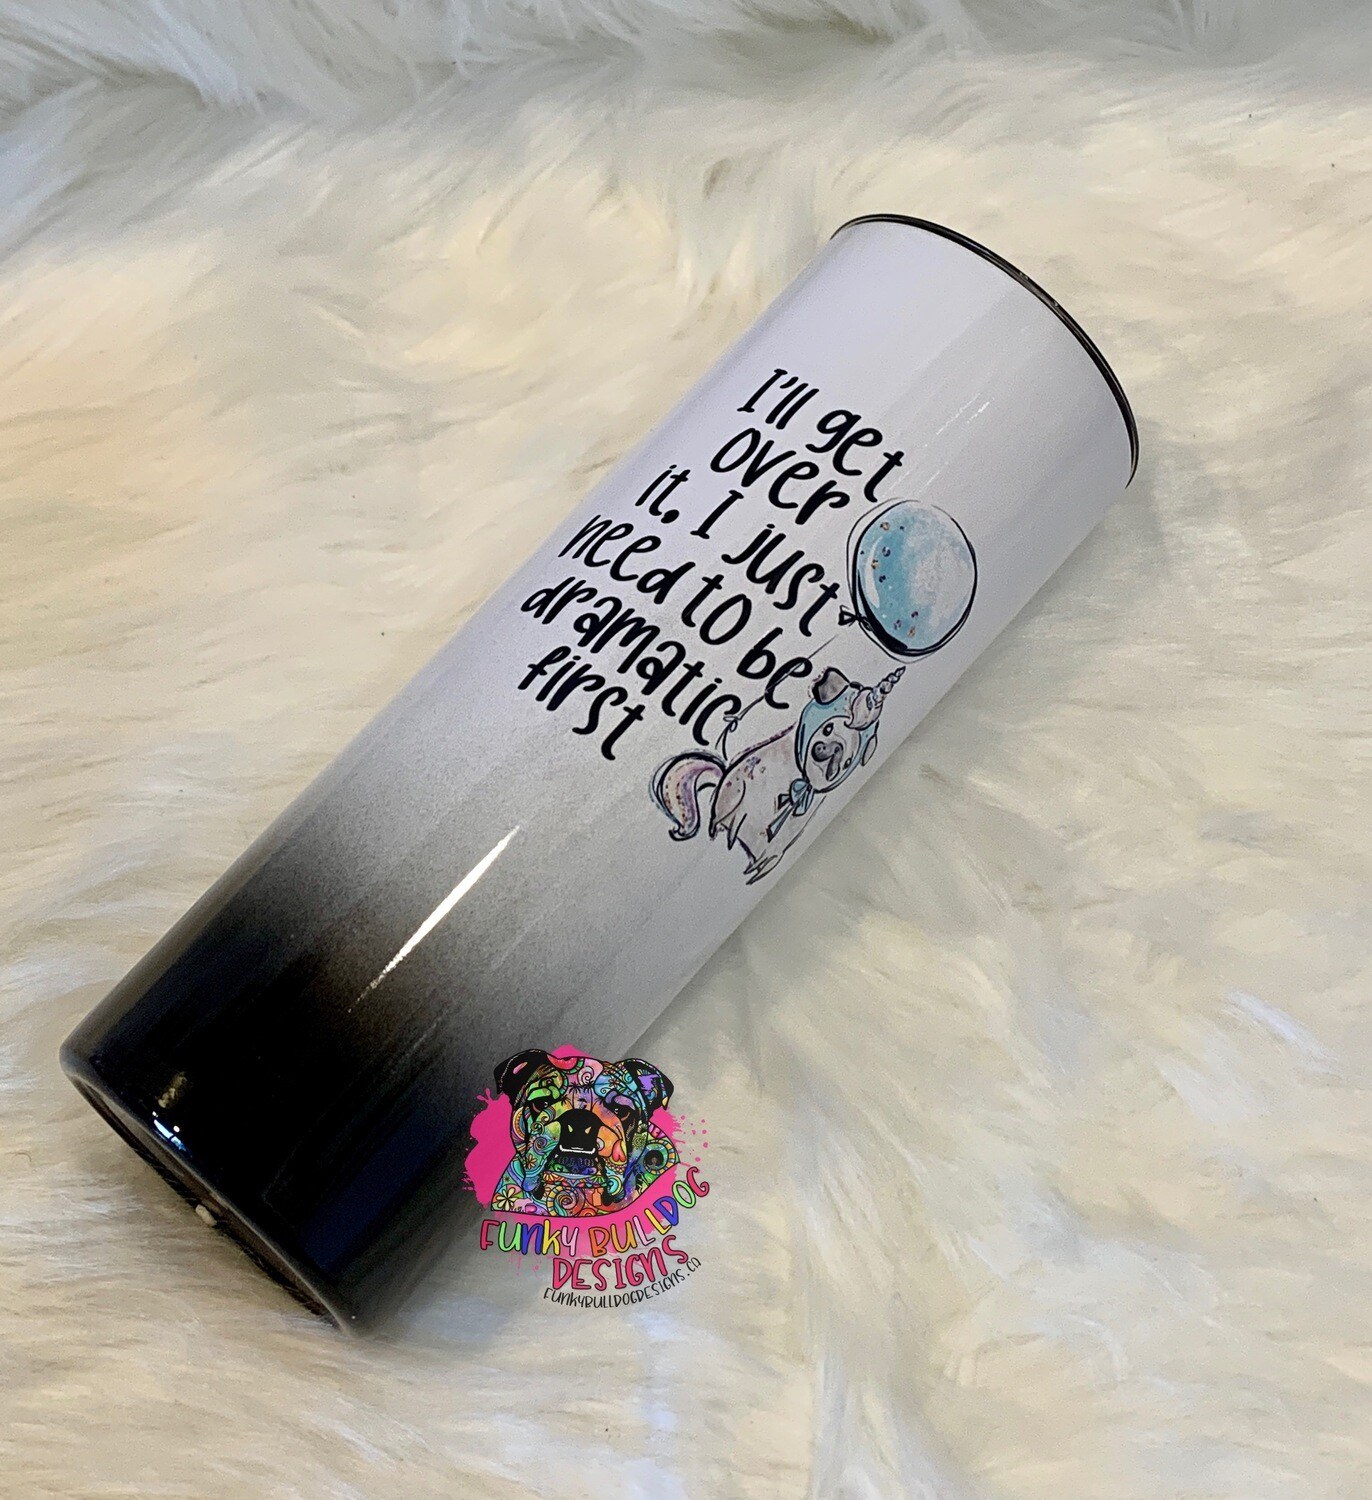 20oz stainless steel tumbler - I'll get over it - dramatic pug dog